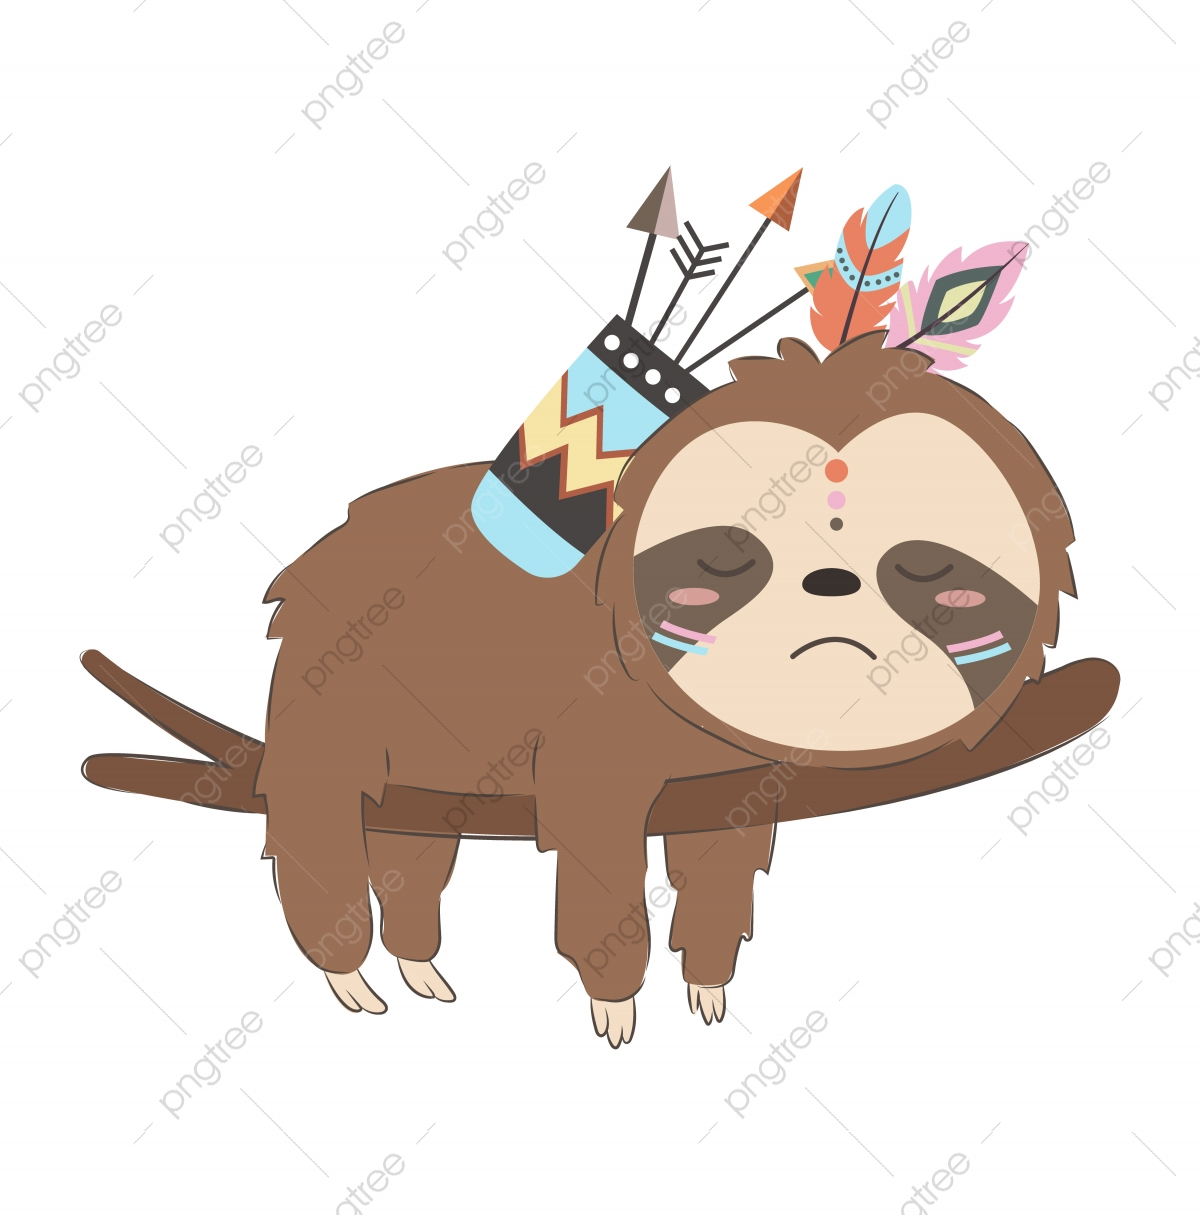 Adorable Baby Sloth Illustration For Nursery Art Adorable Animal Animals Png And Vector With Transparent Background For Free Download